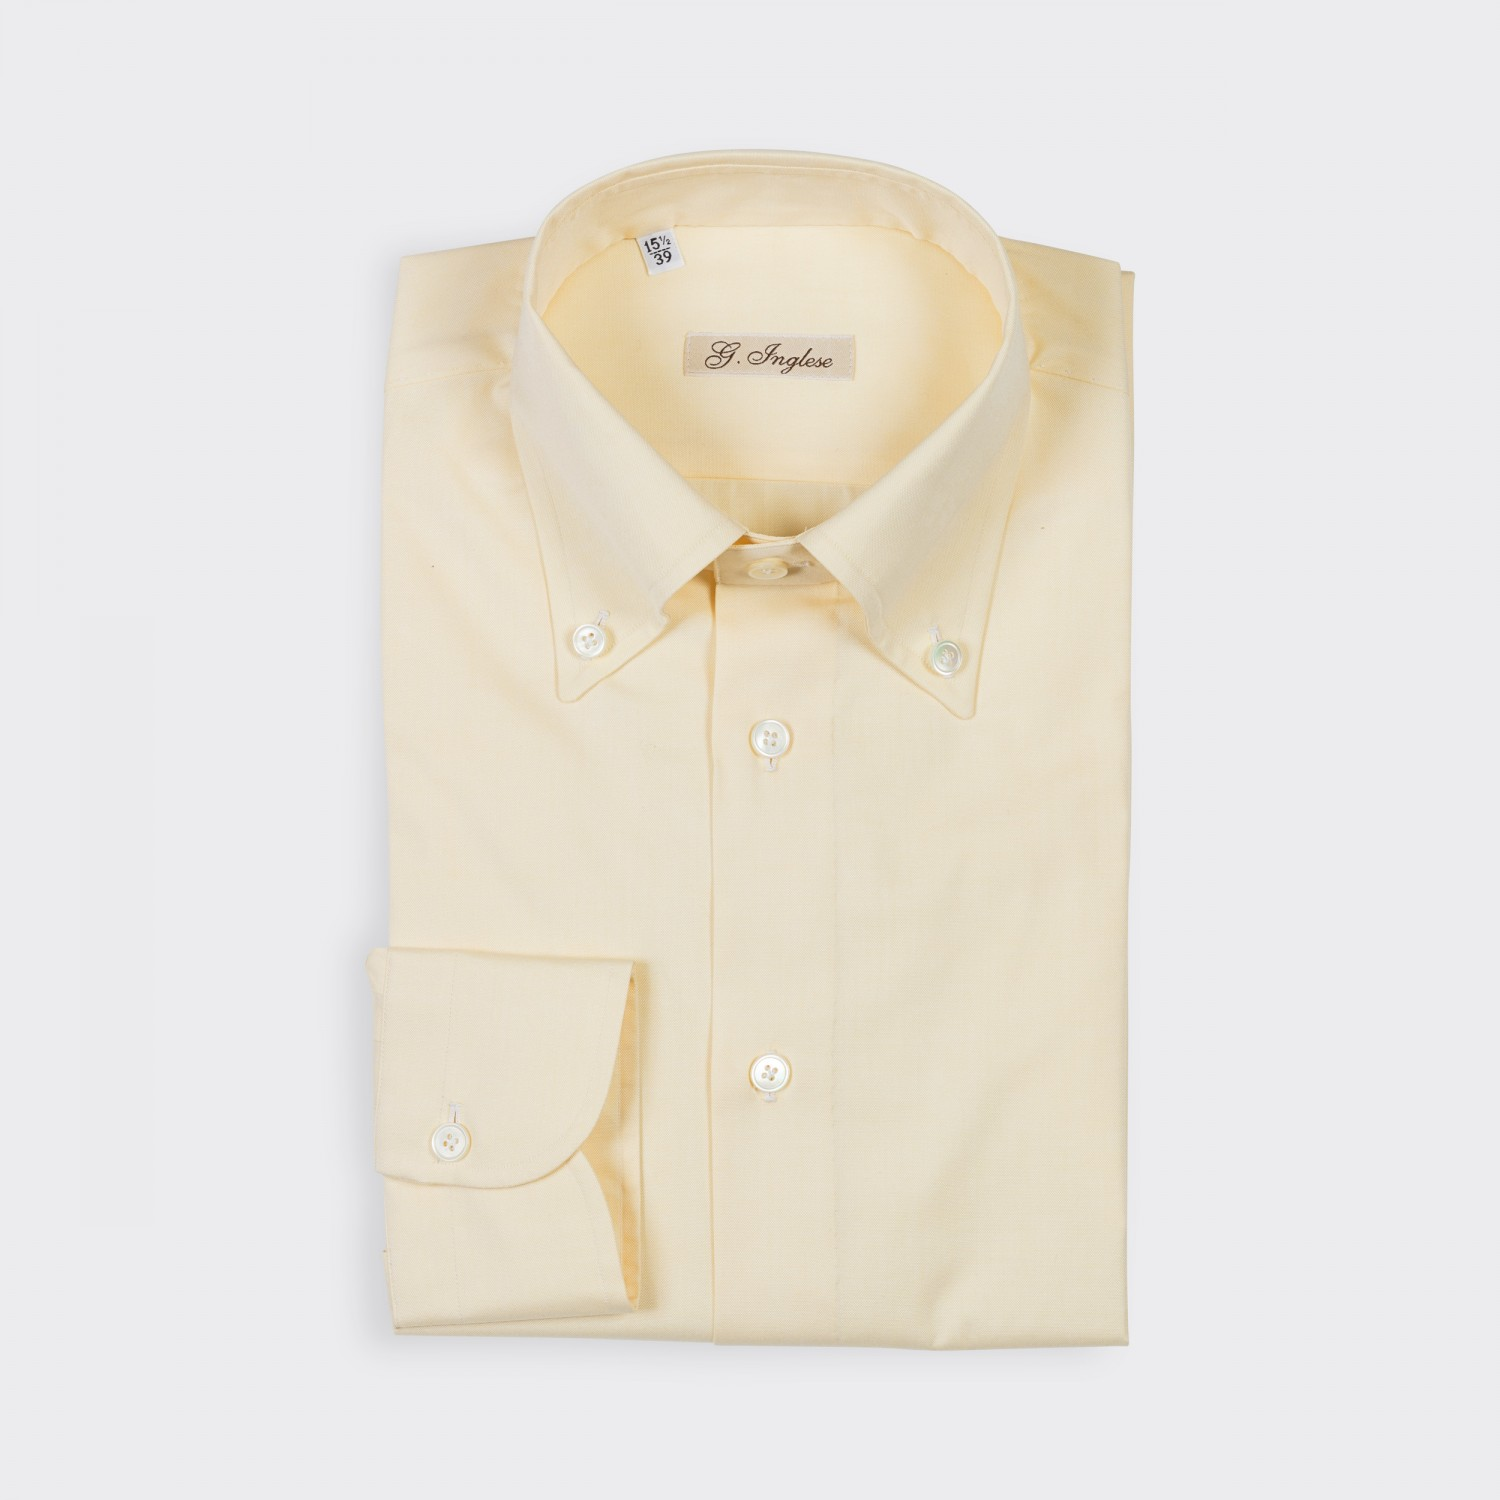 G inglese oxford button down collar shirt light yellow for White button down collar oxford shirt